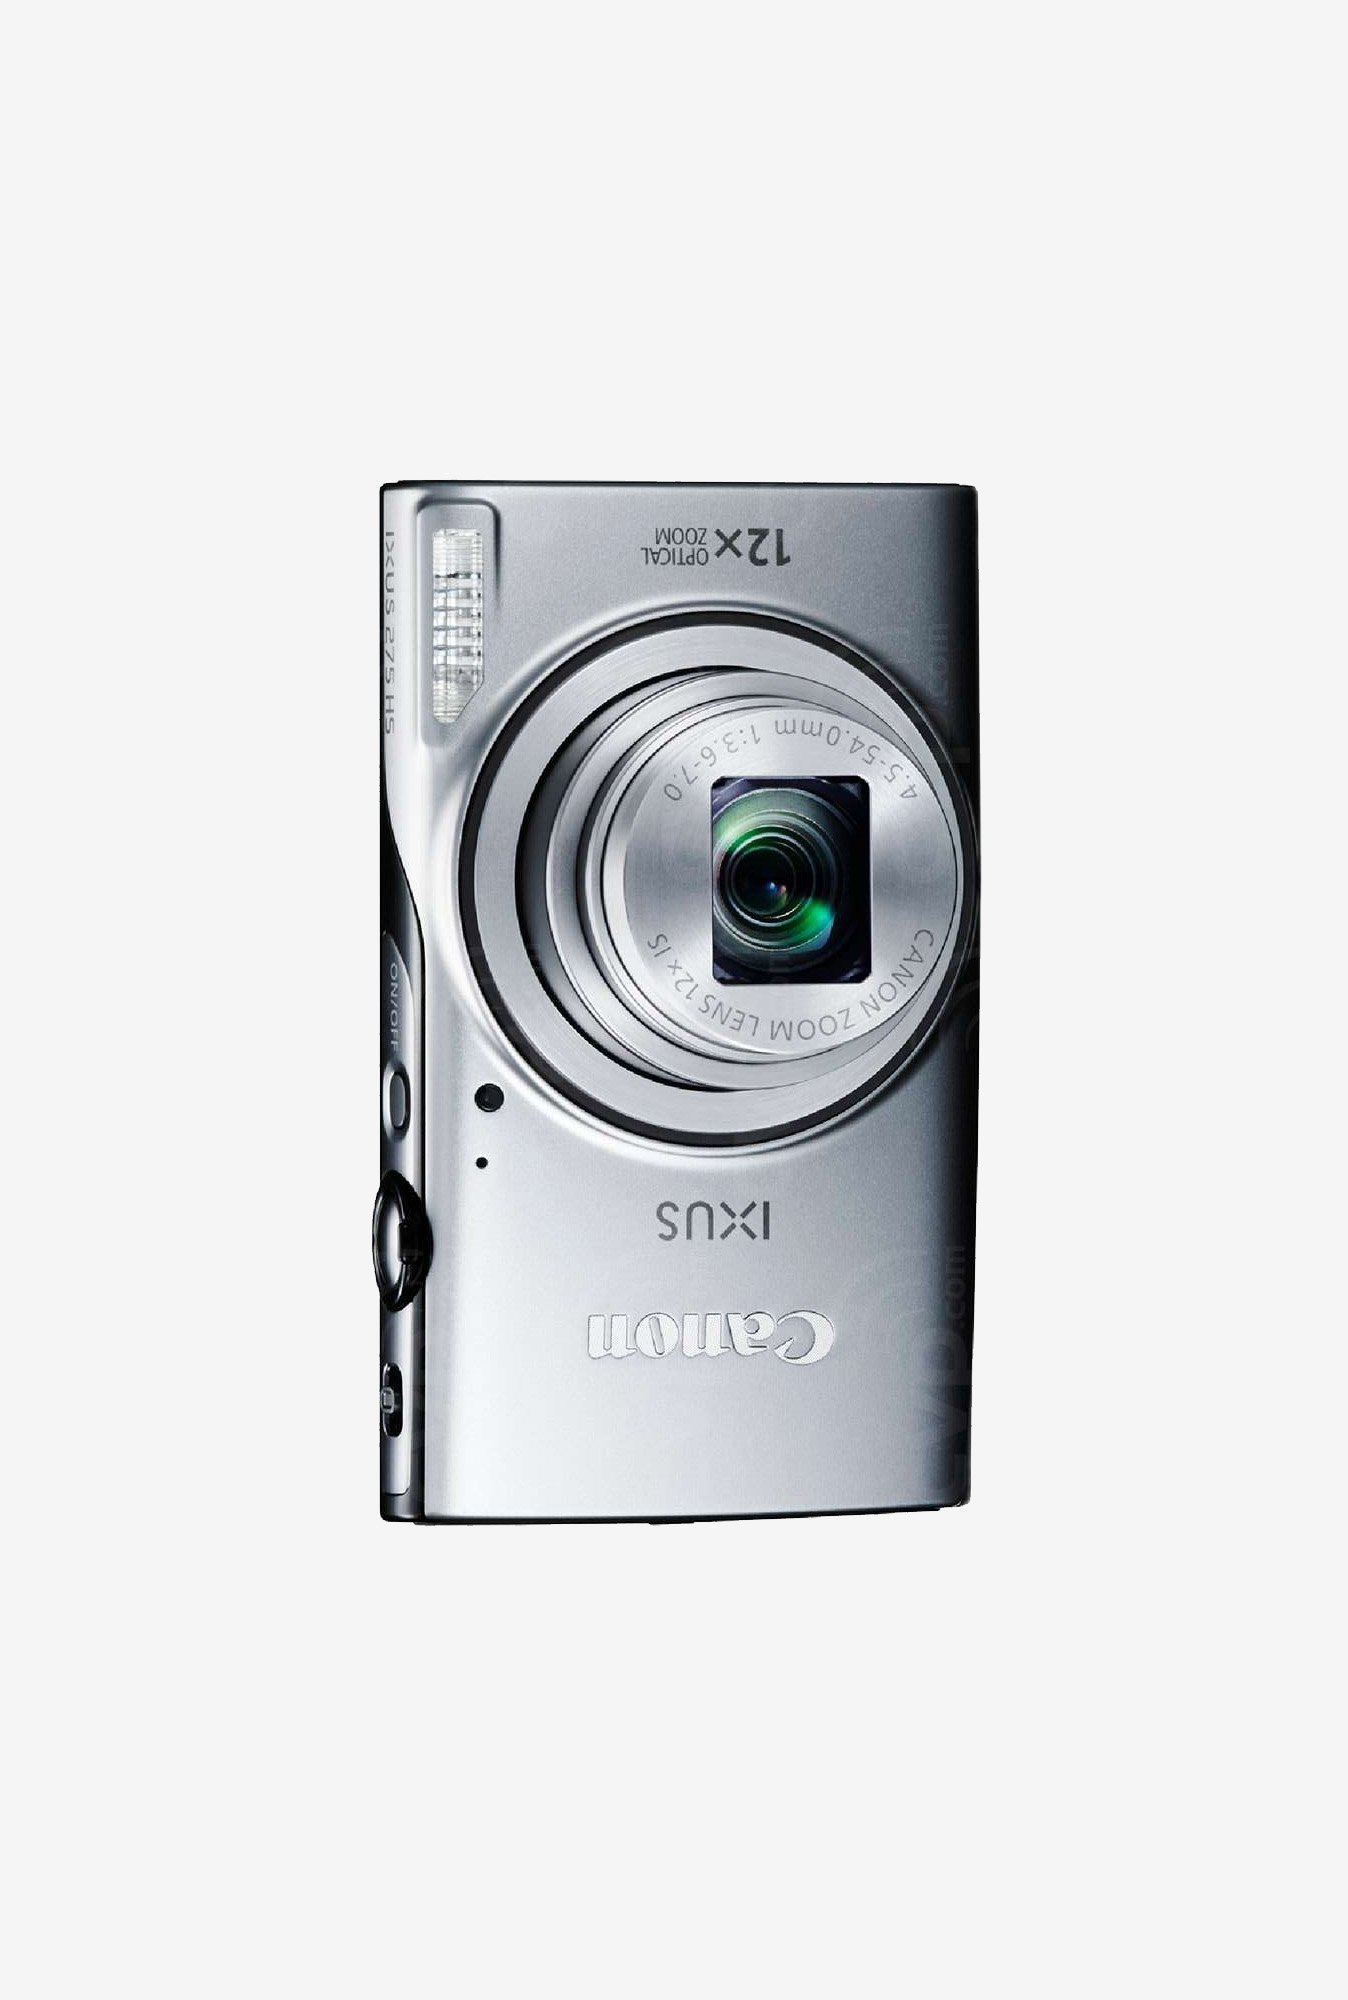 Canon IXUS 275 Point & Shoot Camera (Silver)